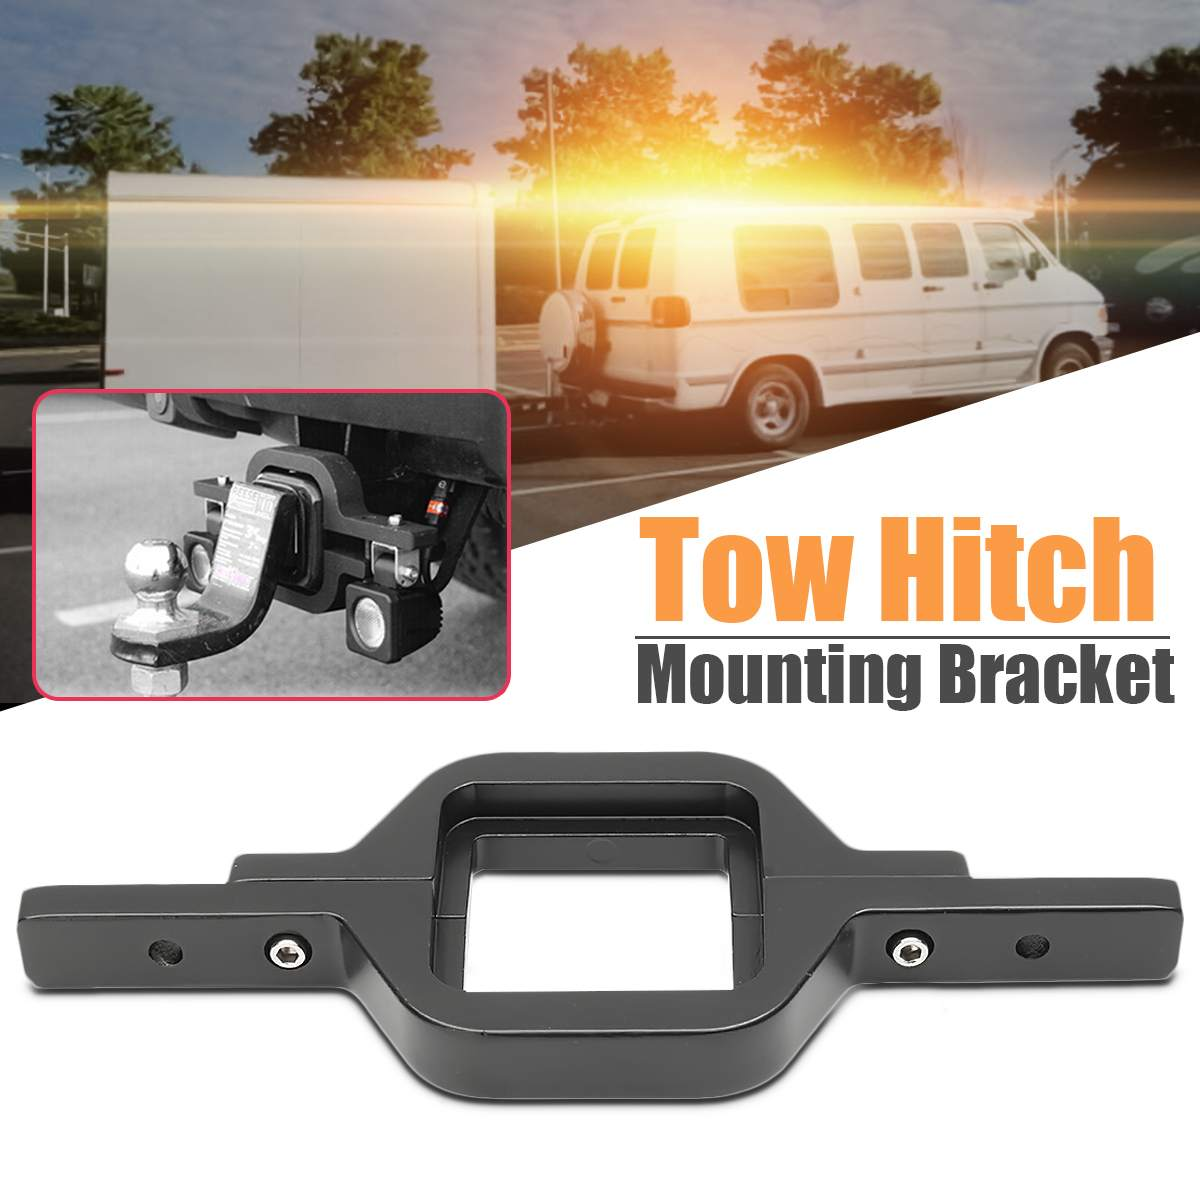 Hitch-Mounting-Bracket-Holder Backup-Light Truck Trailer Tow Lexus SUV New Car for Dual-Led title=